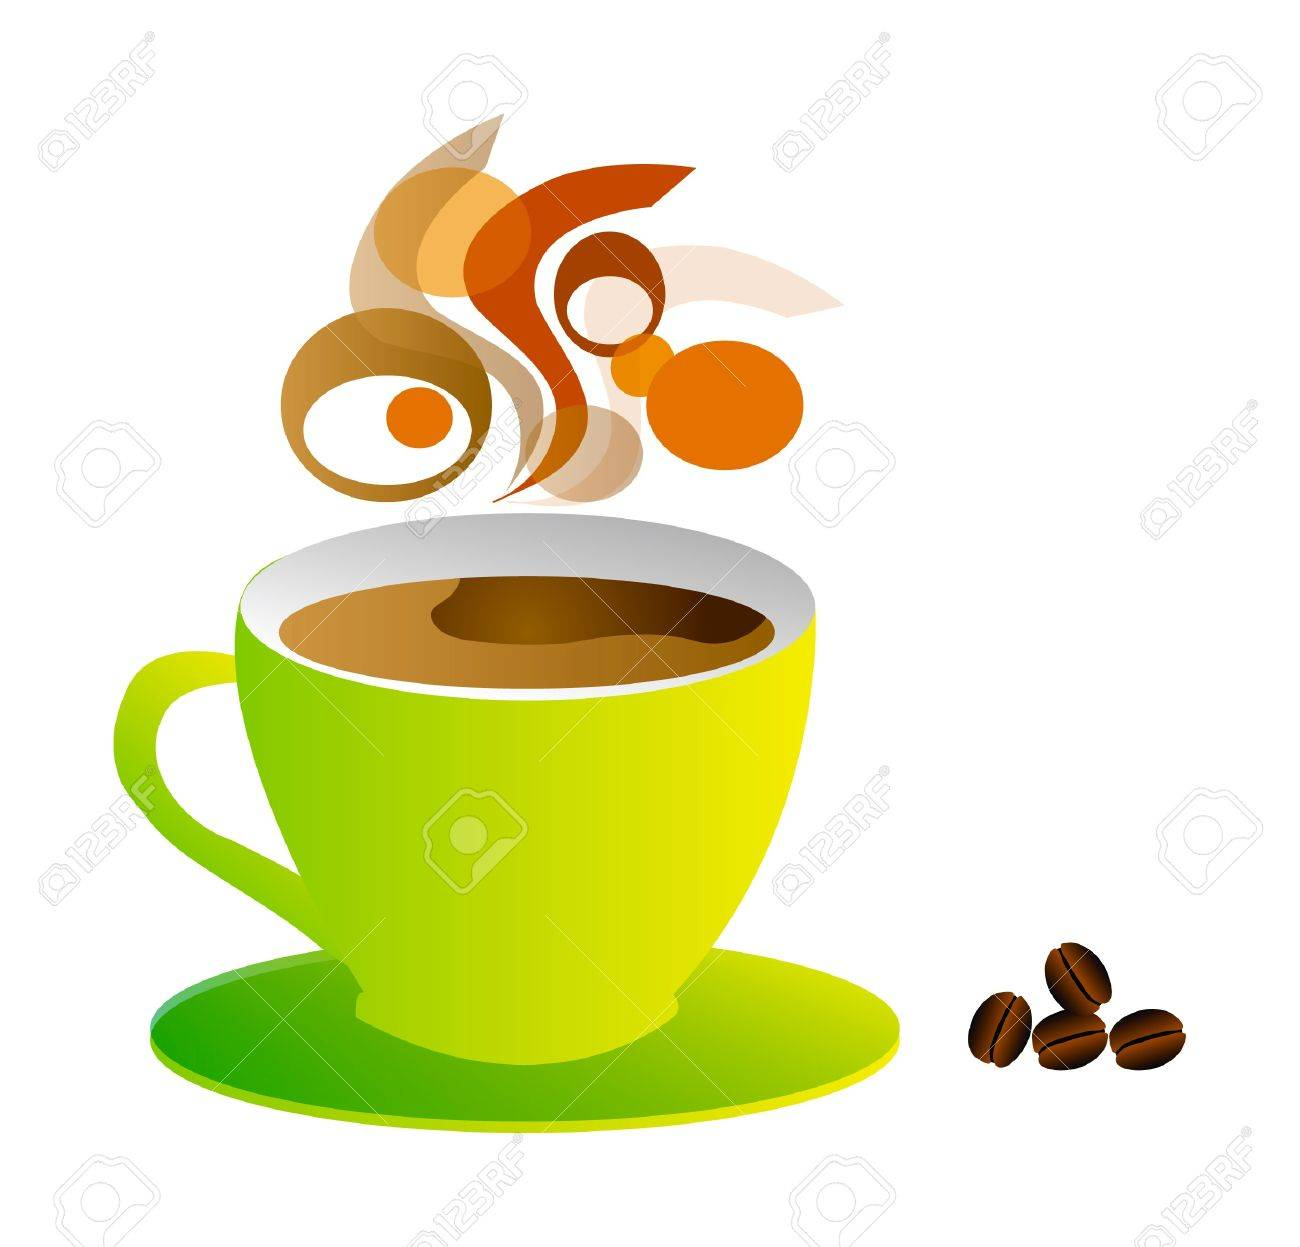 nice illustration - make a break and take one cup of coffee Stock Vector - 7477370